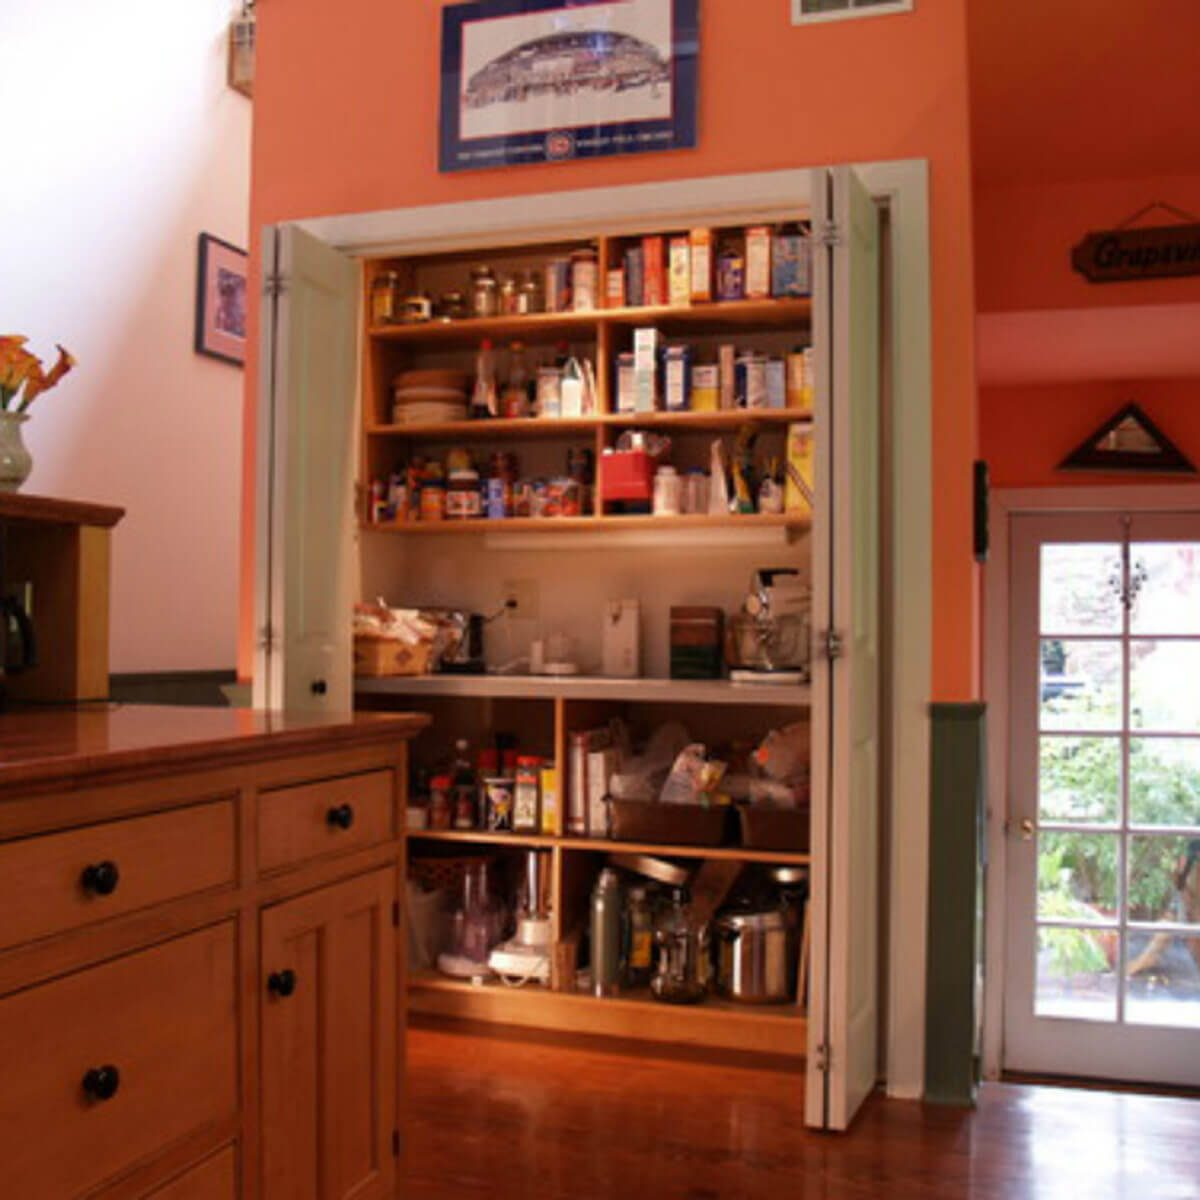 eclectic-kitchen building a pantry